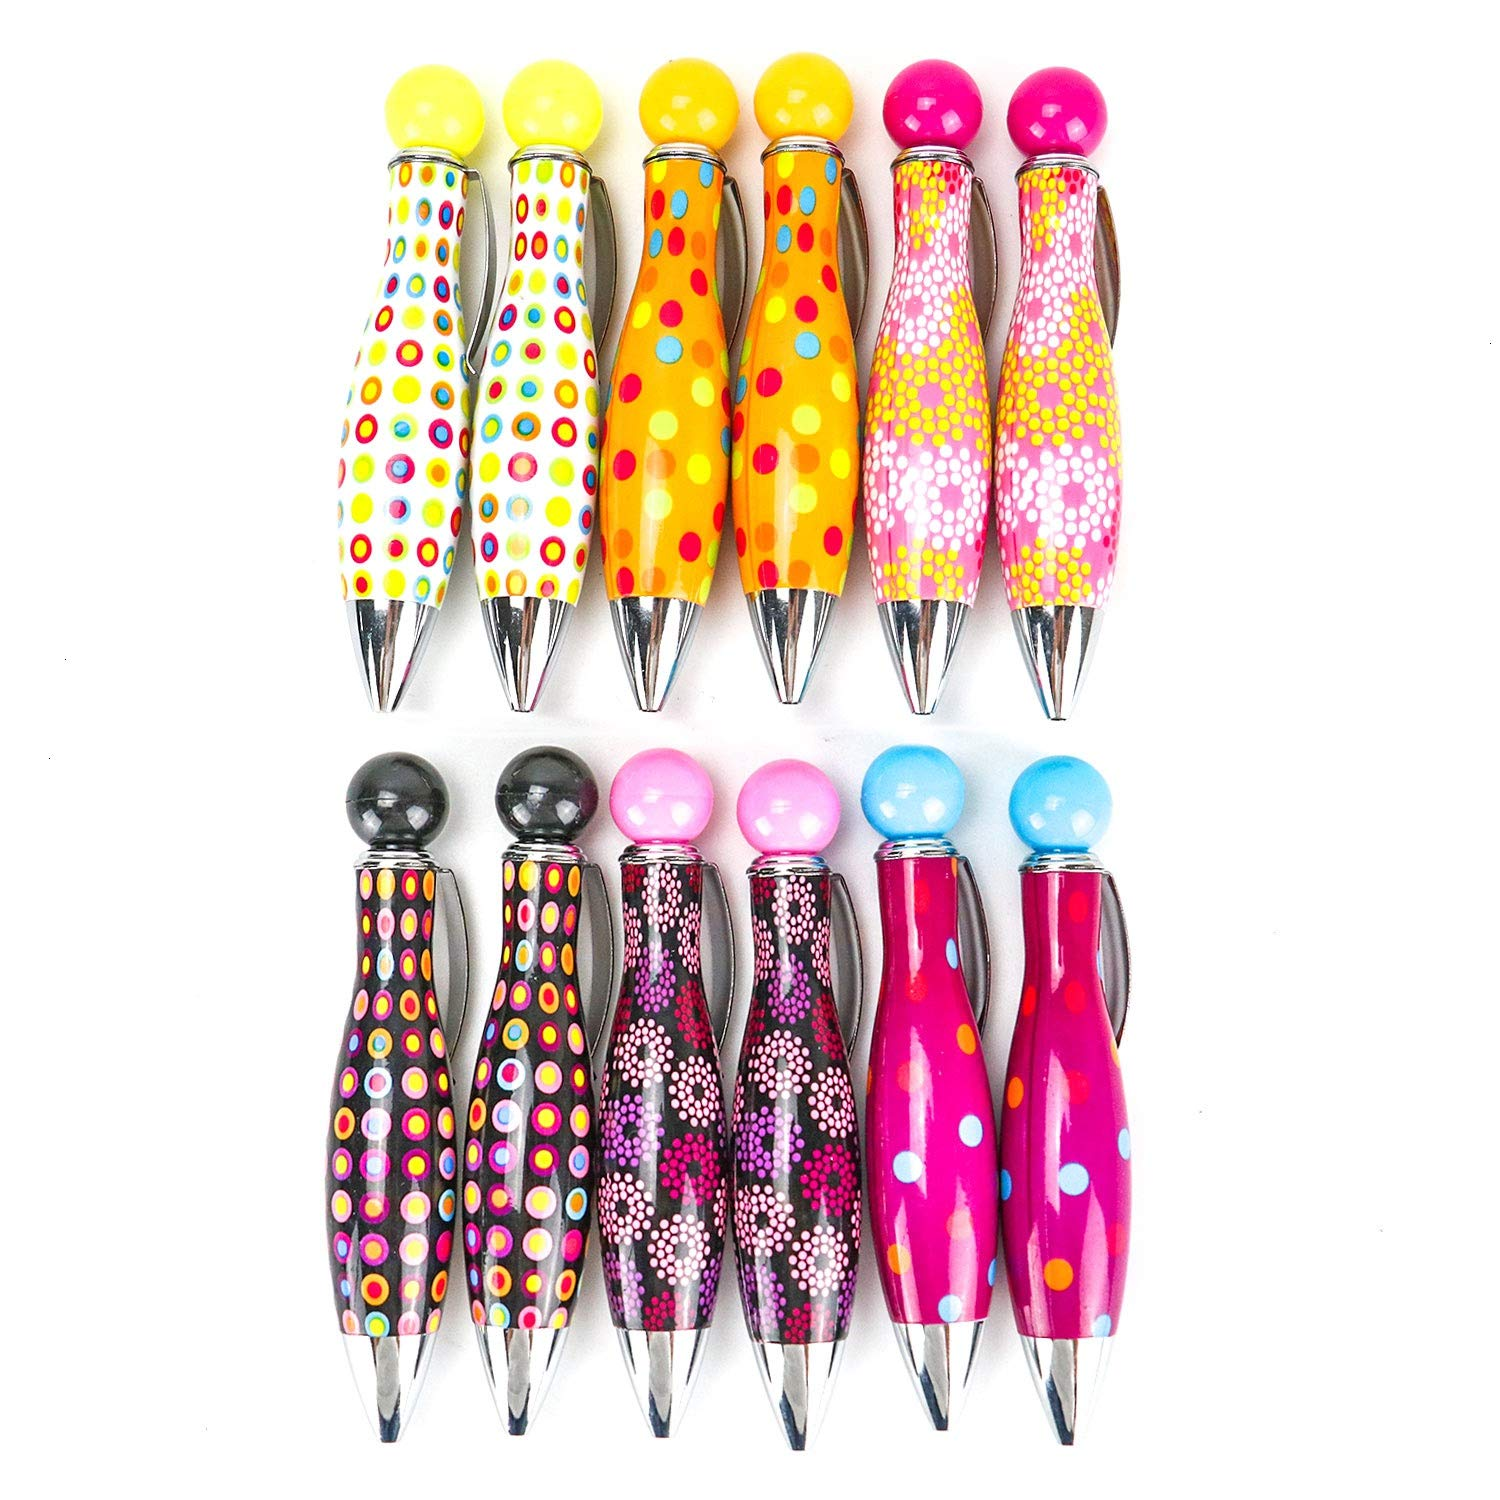 IDS 12Pcs Cute Retractable Bowling Style Mini Ballpoint Pens, Colorful Pen Shell,0.5mm Blue Ink for Writing,Student Gift School Office Supplies